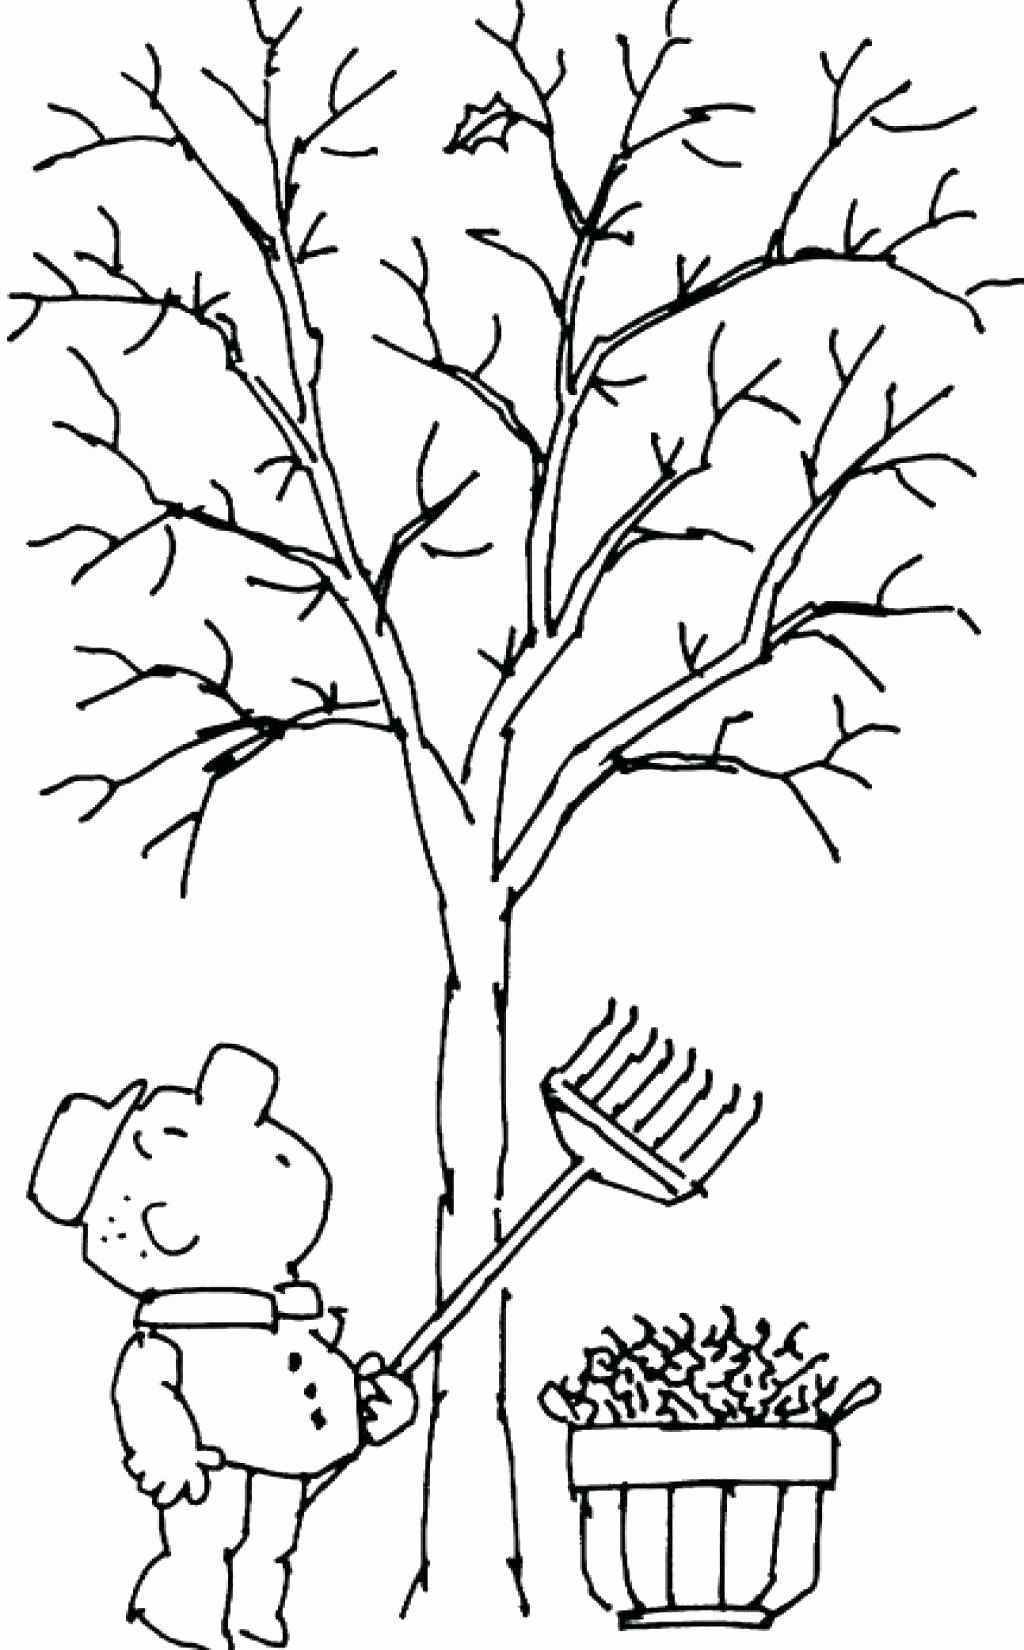 Tree Without Leaves Coloring Page New The Giving Tree Coloring